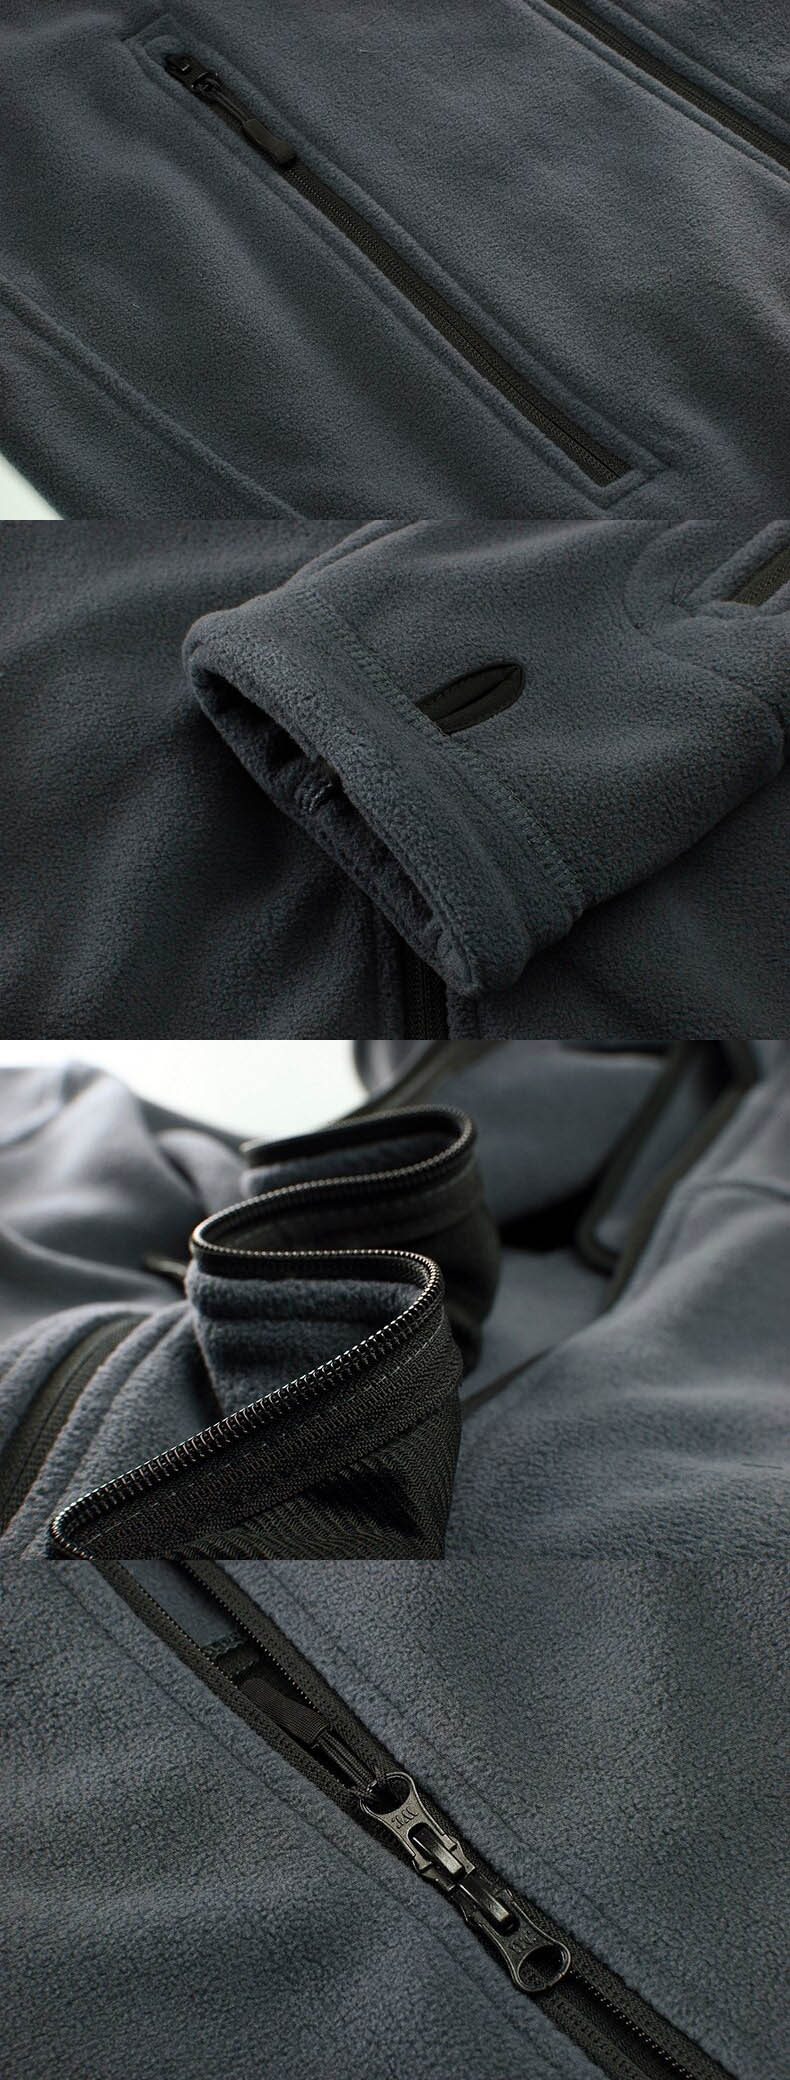 TheRex Winter Fleece Jacket